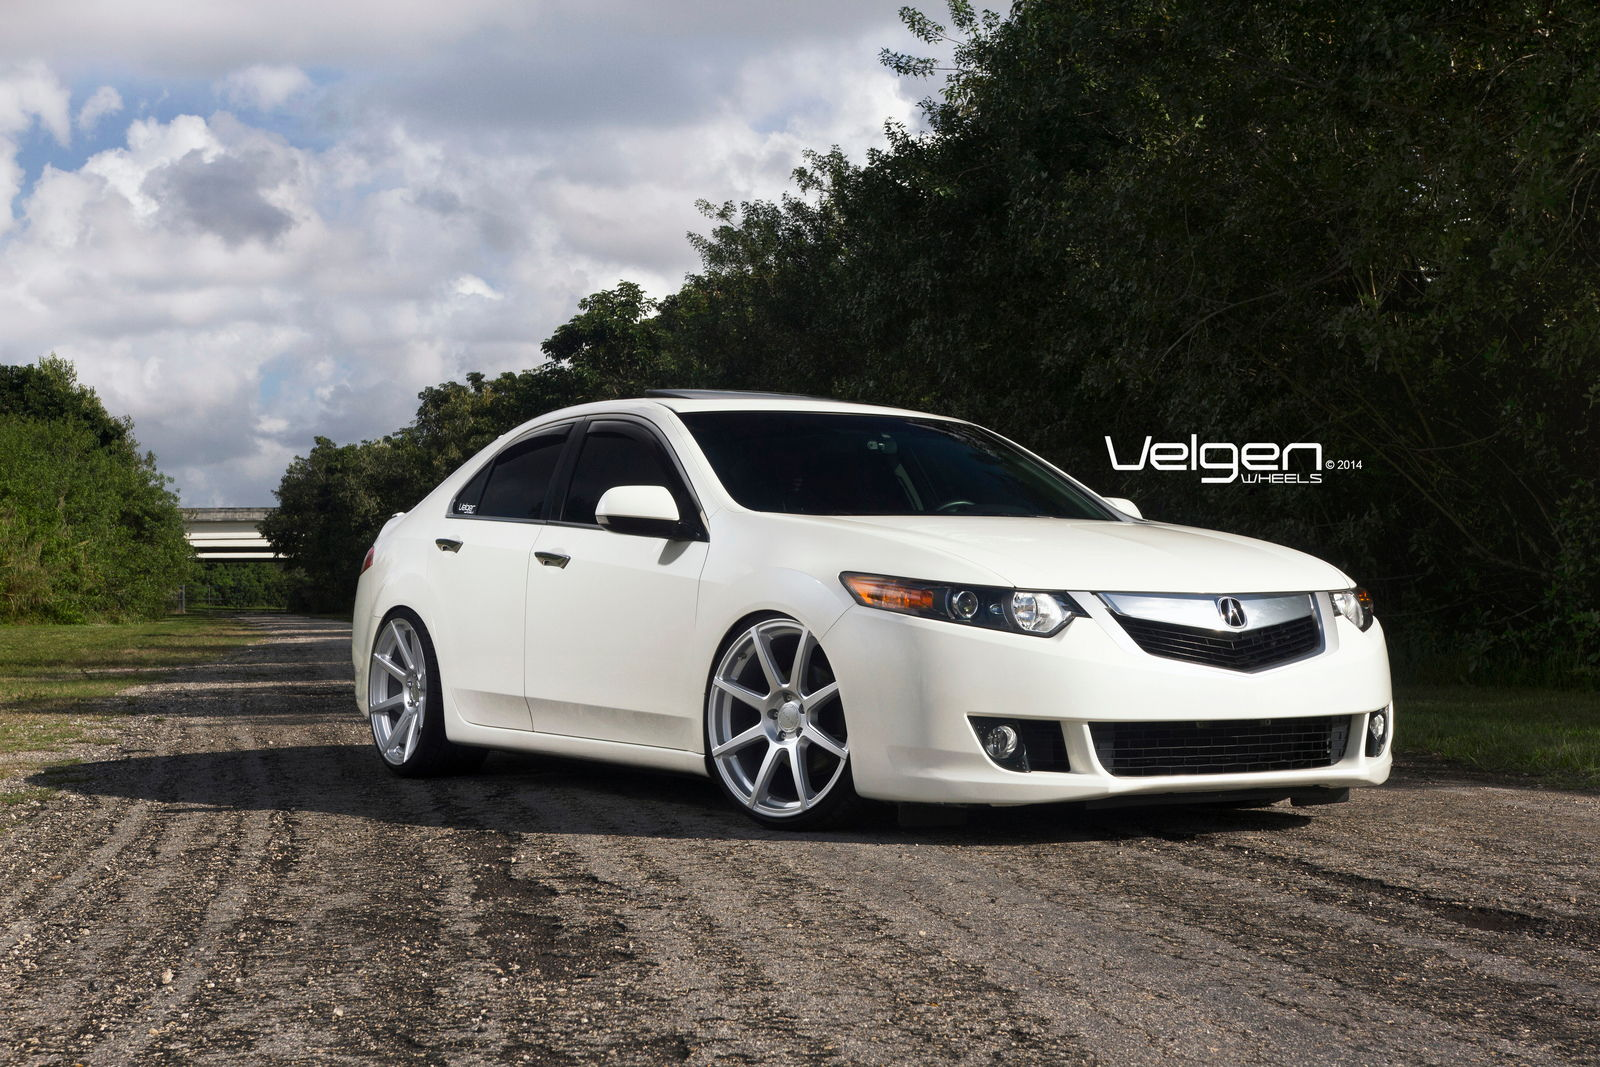 Acura Tl together with Z Acura Tl Tsx Tsx Engine Bay in addition Imag besides D F S T W Acura Tl White Spec Wdp K Sport Navi Fully Loaded Minor Mods Etc Img furthermore Maxresdefault. on 2005 acura tl starter location